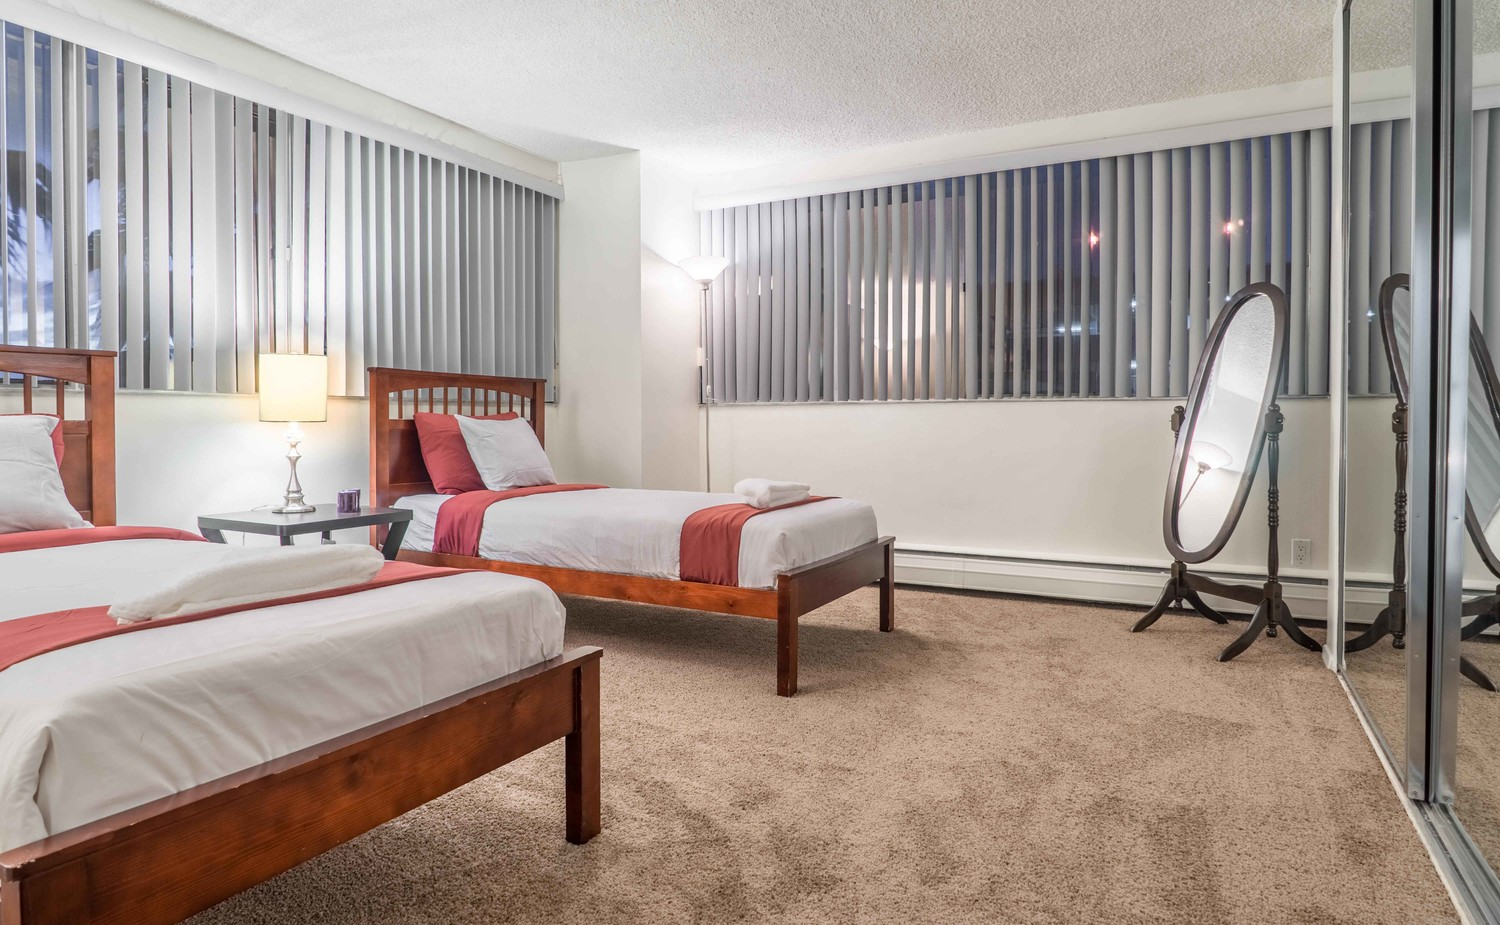 2Bed 2Bath Shared Master Bedroom for Rent in Barrington